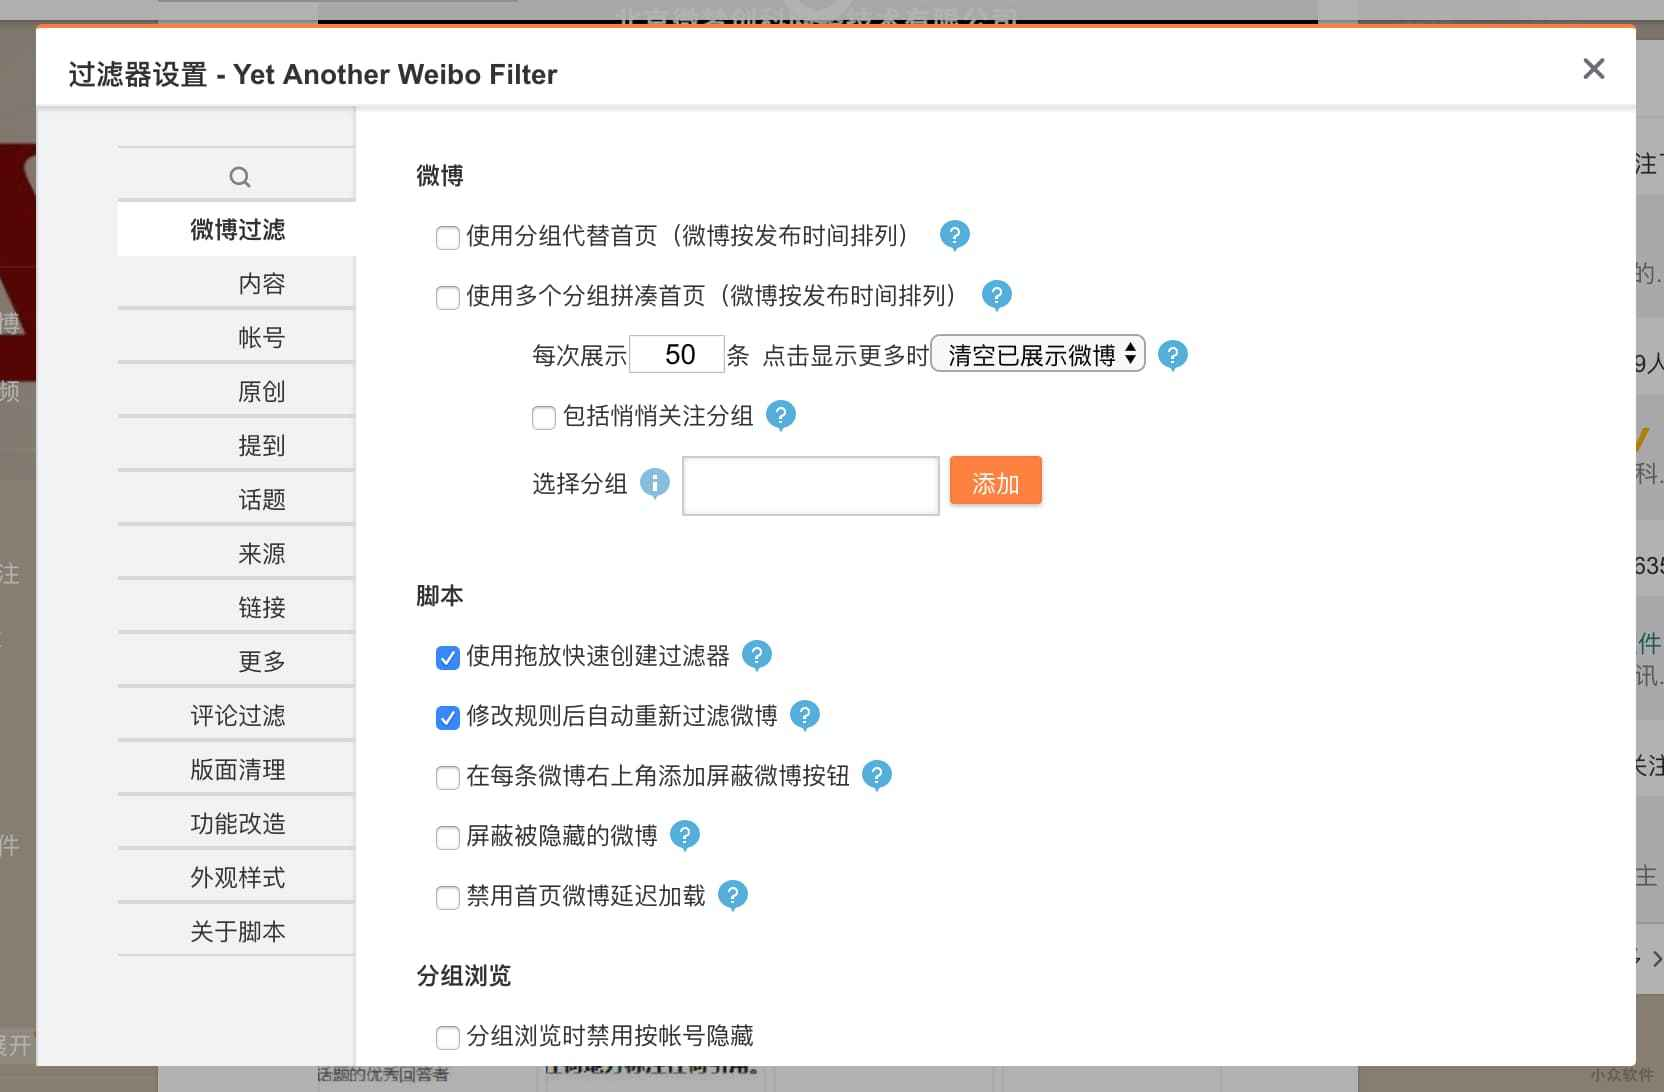 Yet Another Weibo Filter - 微博关键词、话题、作者过滤工具 1